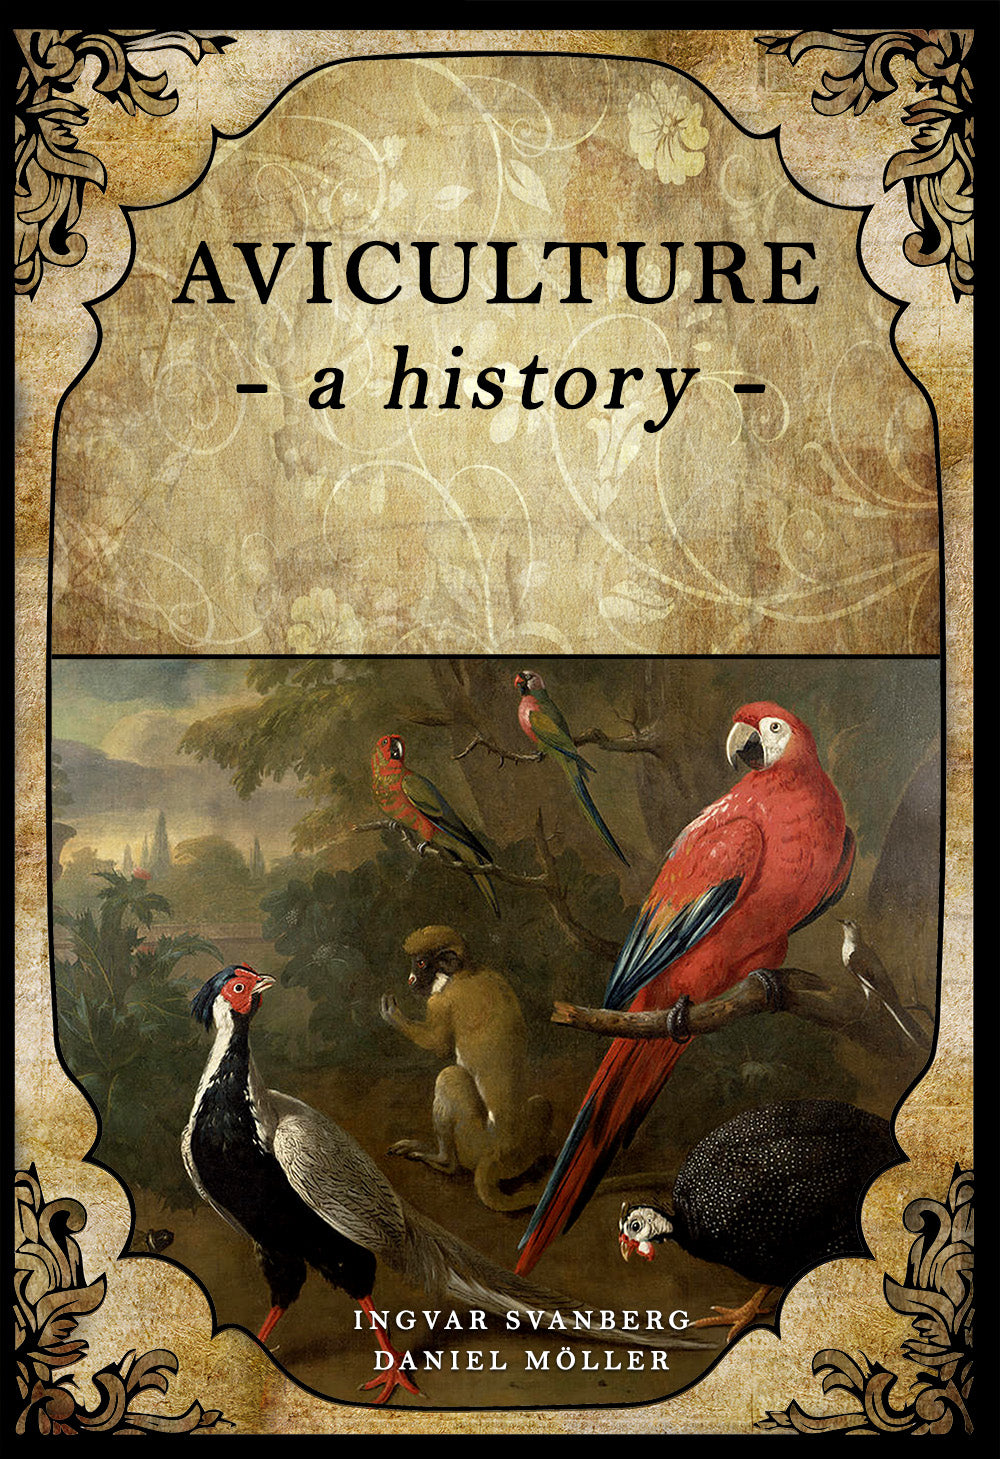 Aviculture: a history